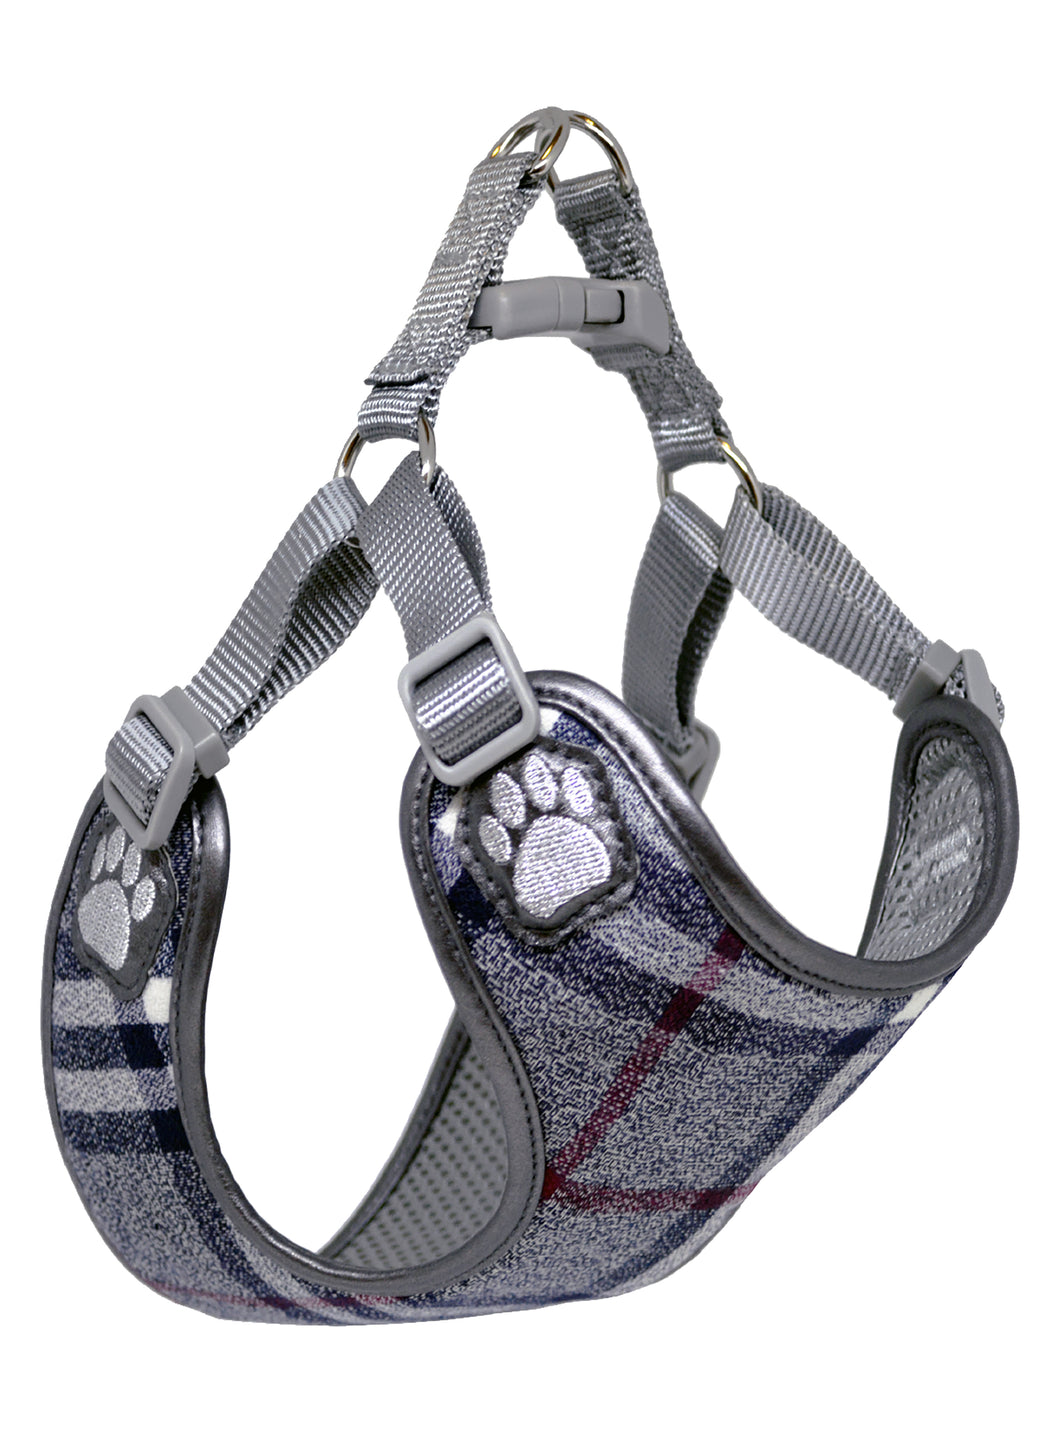 Pretty Paw - London Fog Harness - Chubbs Bars, Treats - pet shampoo, Woofur - Chubbs Bars Company, Woofur Natural Pet Products - Chubbs Bars Canada